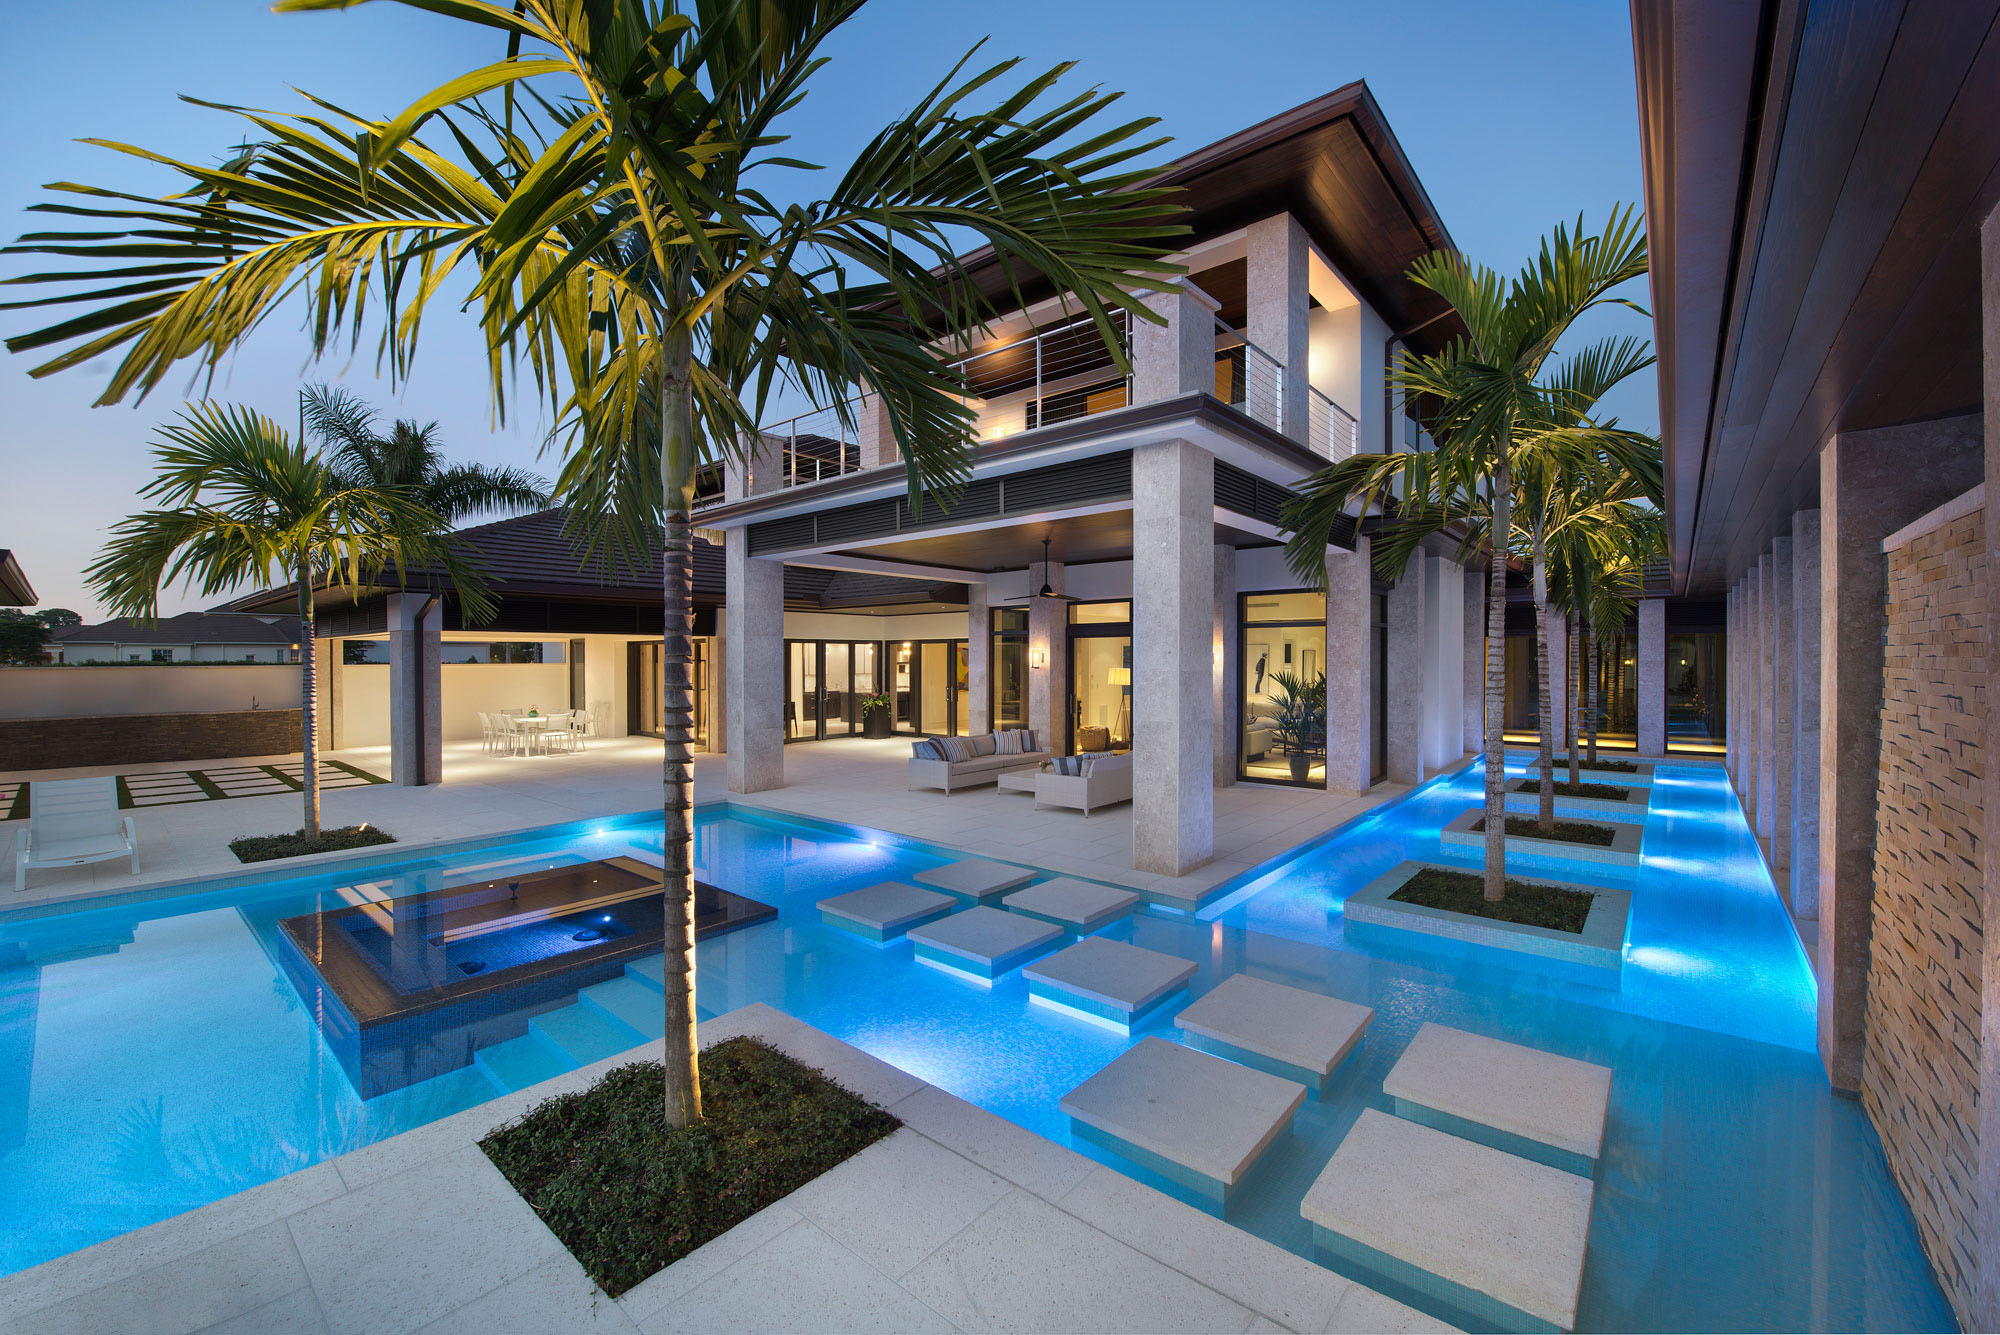 Custom dream home in florida with elegant swimming pool for Design piscine